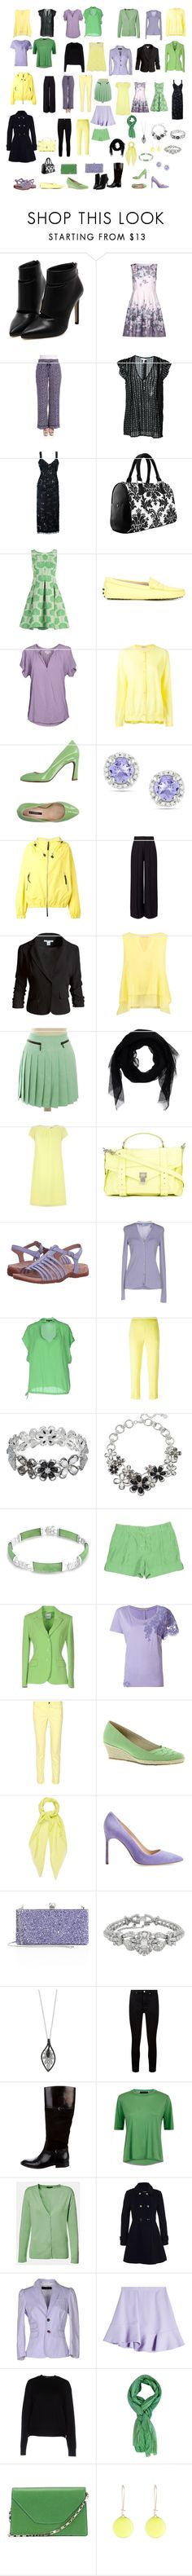 """""""Clear Winter Colors Complete Wardrobe"""" by shawnseepk ❤ liked on Polyvore featuring Yumi, Tommy Hilfiger, Joie, P.A.R.O.S.H., Tod's, Velvet by Graham & Spencer, D'AMBRA, Ice, Marni and Miss Selfridge"""